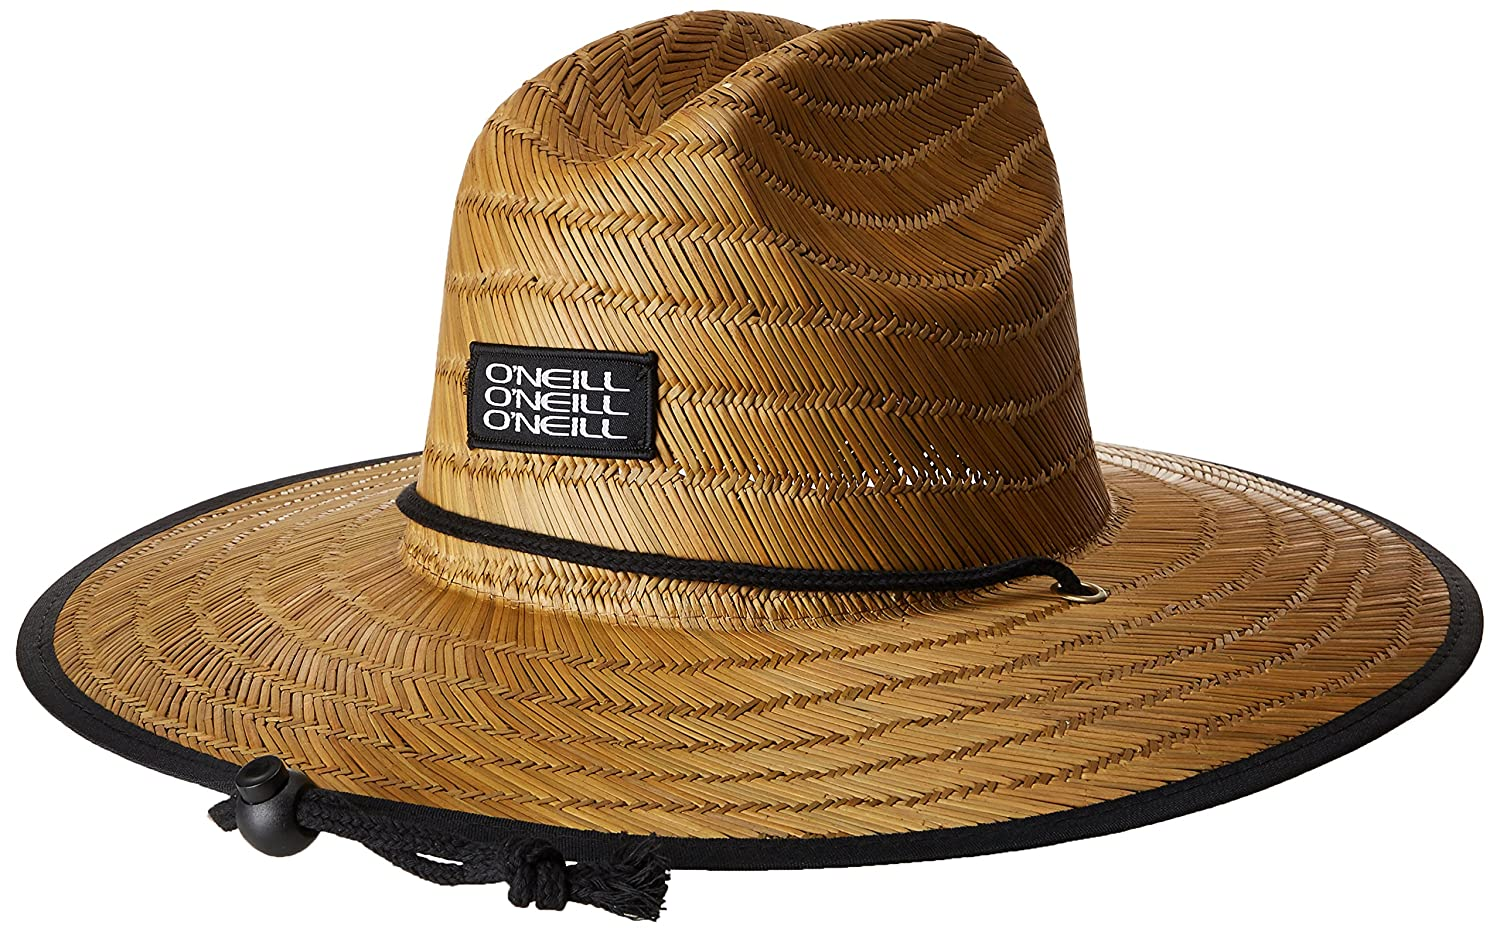 0661a5589 O'Neill Men's Sonoma Prints Straw Hat